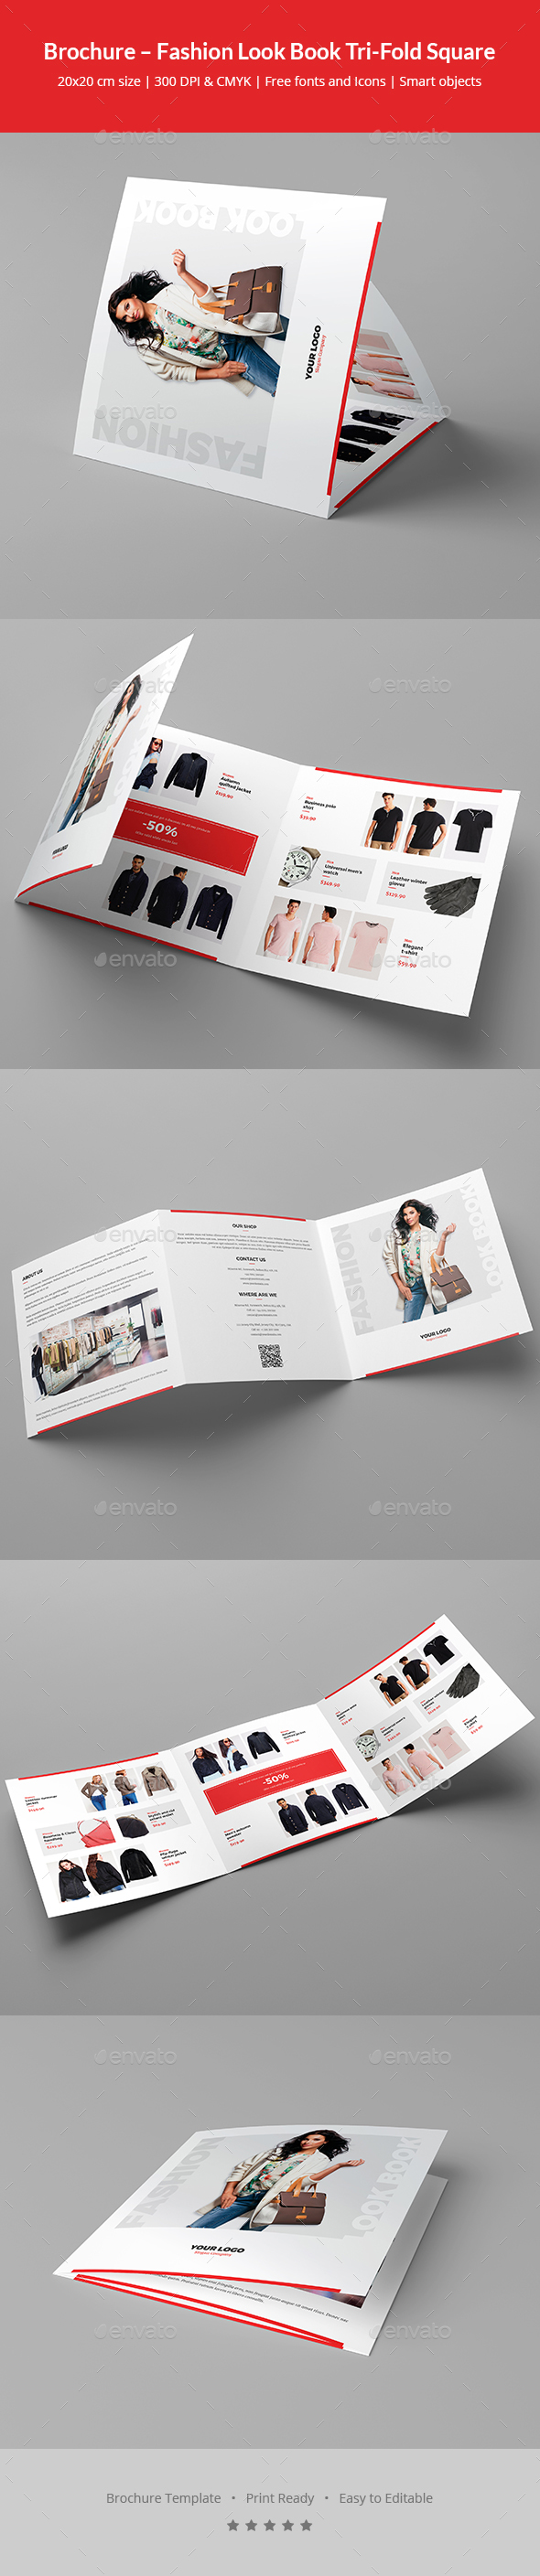 GraphicRiver Brochure Fashion Look Book Tri-Fold Square 20916941